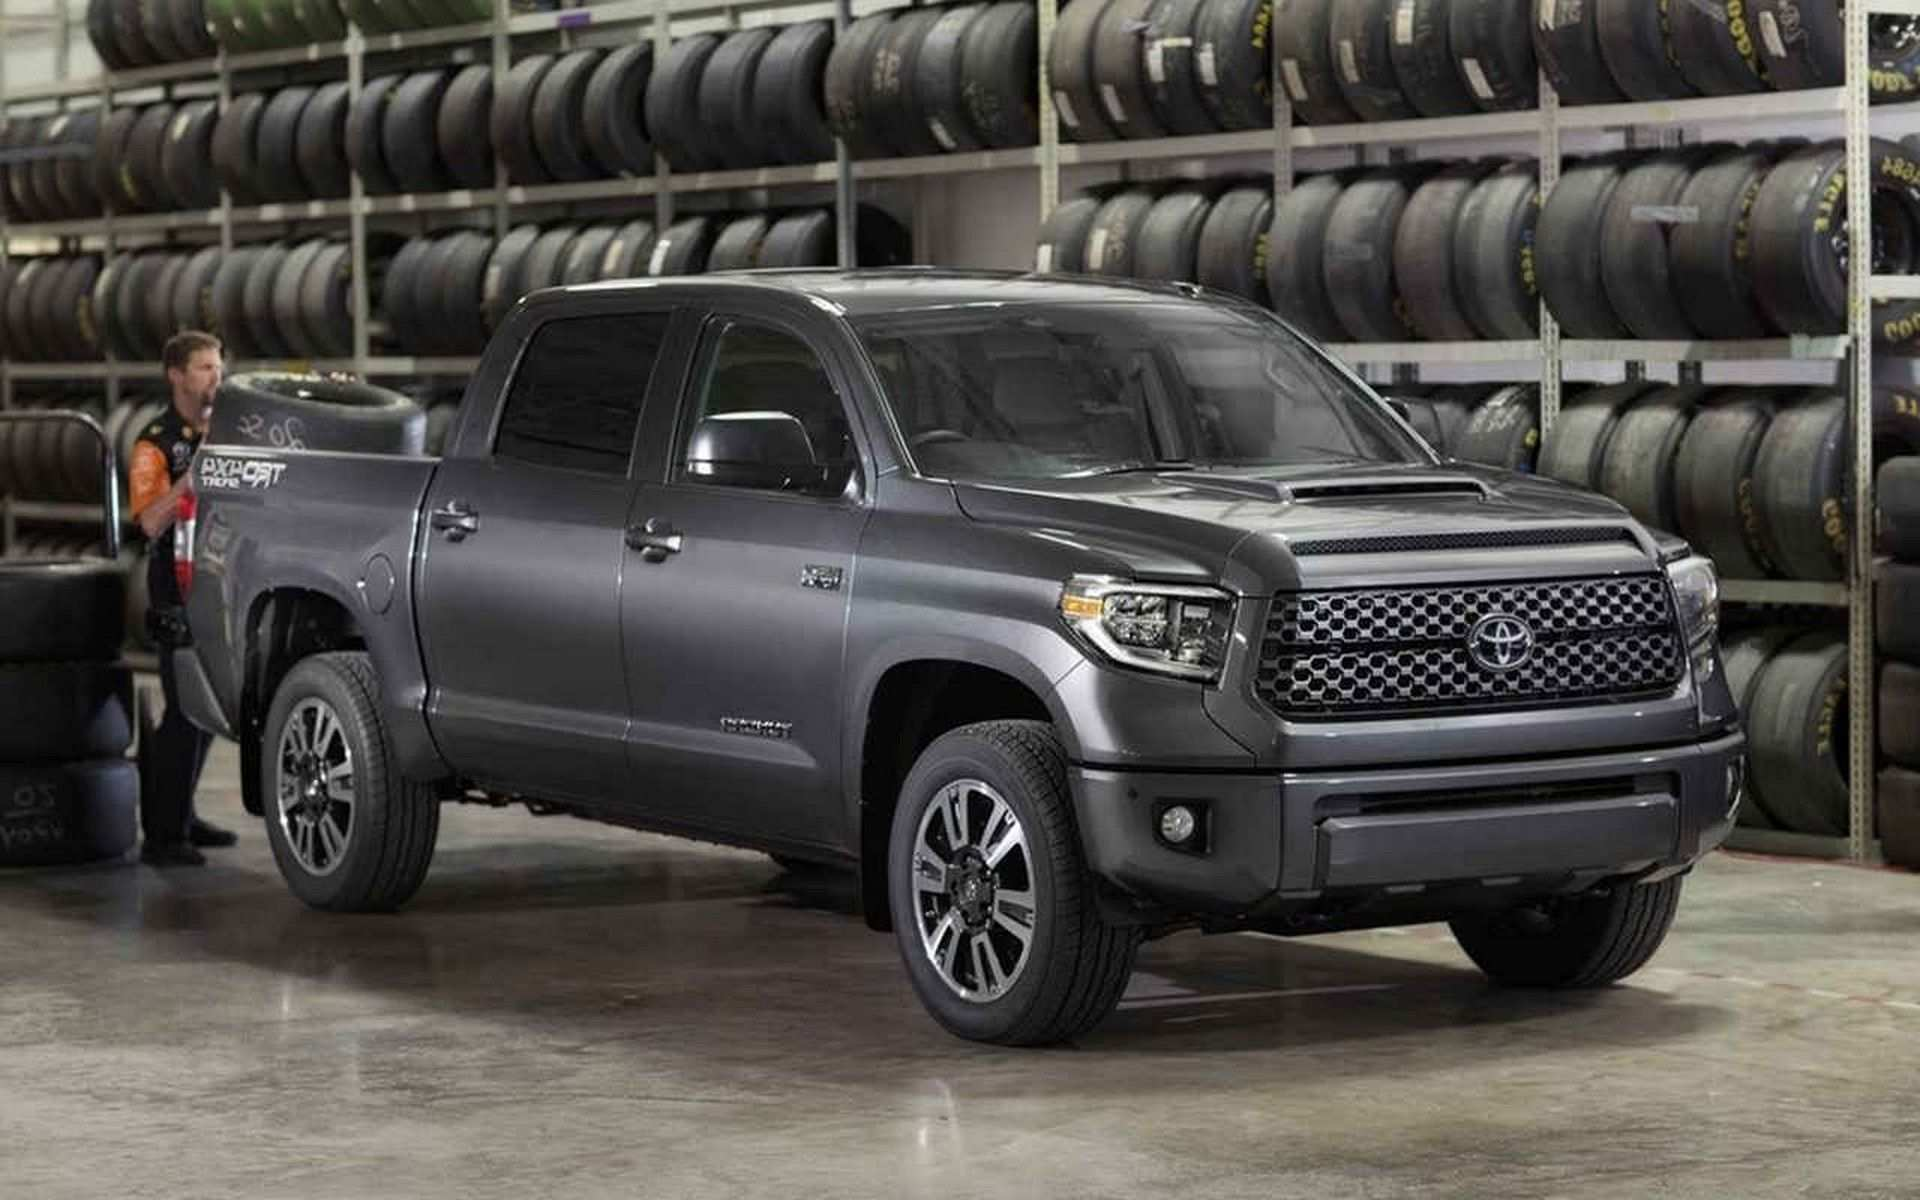 20 New 2019 Toyota Tundra Concept Reviews for 2019 Toyota Tundra Concept